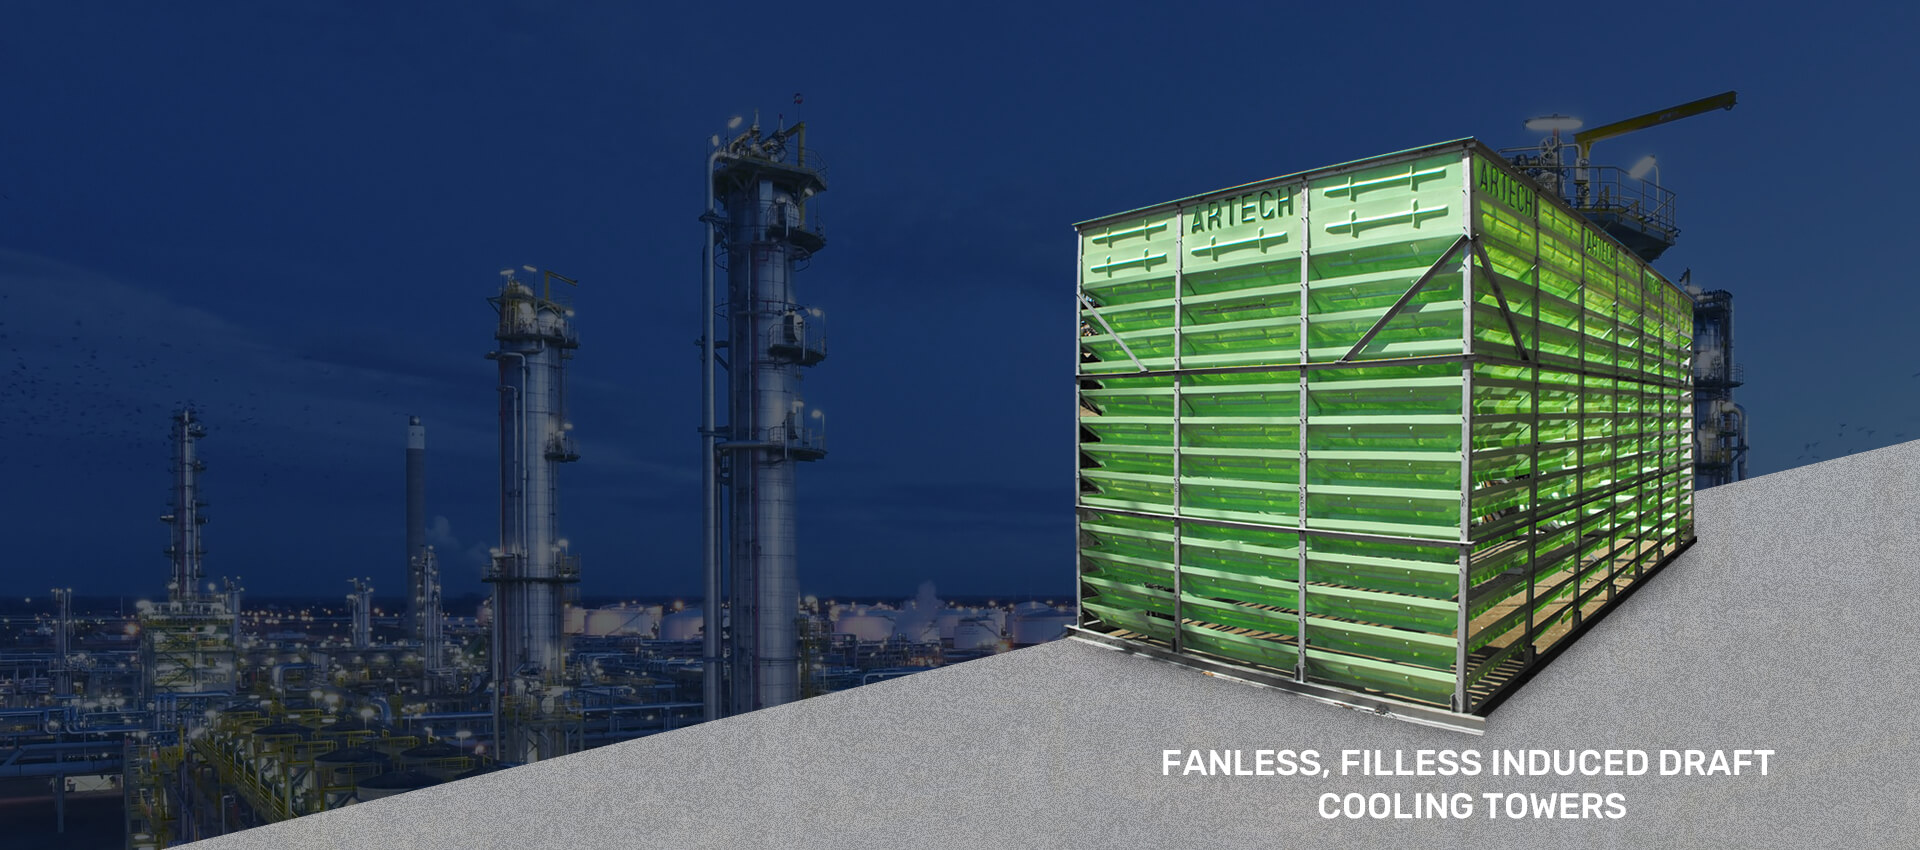 FRP INDUCED DRAFT COUNTER FLOW COOLING TOWER